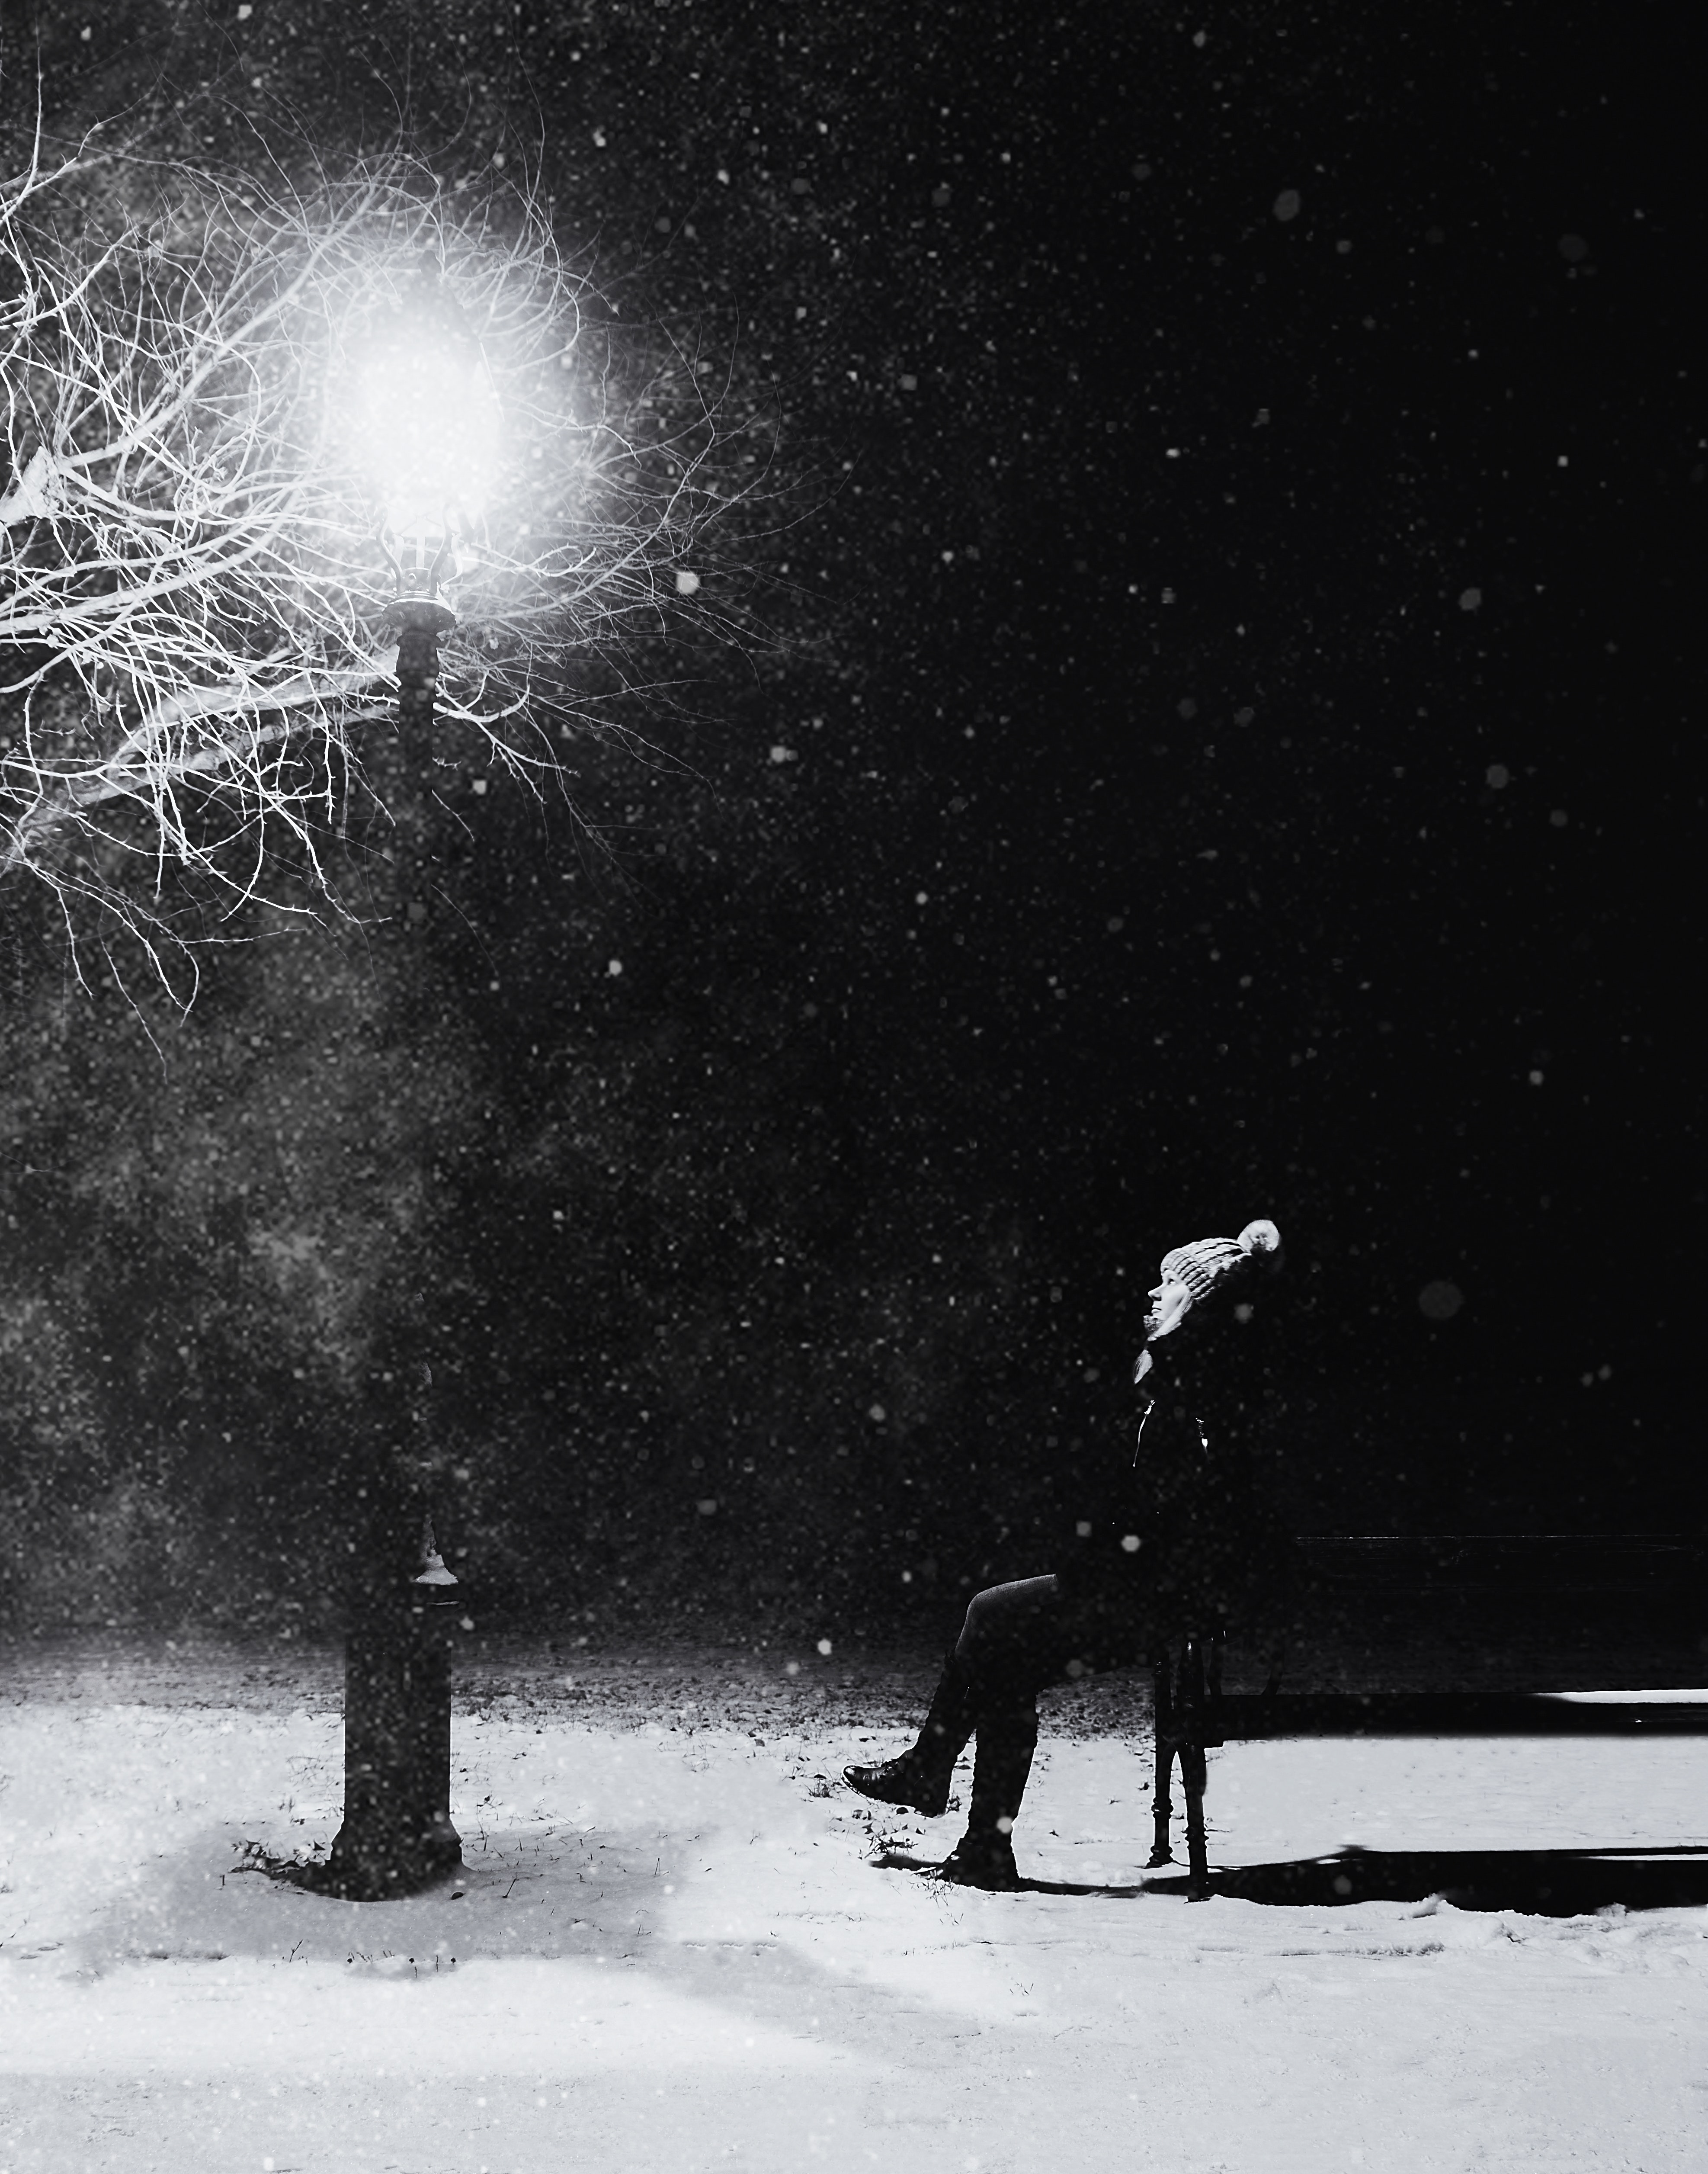 Grayscale Photography of Person With Knit Pompom Cap Sits in Front Turned on Light Post at Night, Adult, Snow, Winter, Weather, HQ Photo